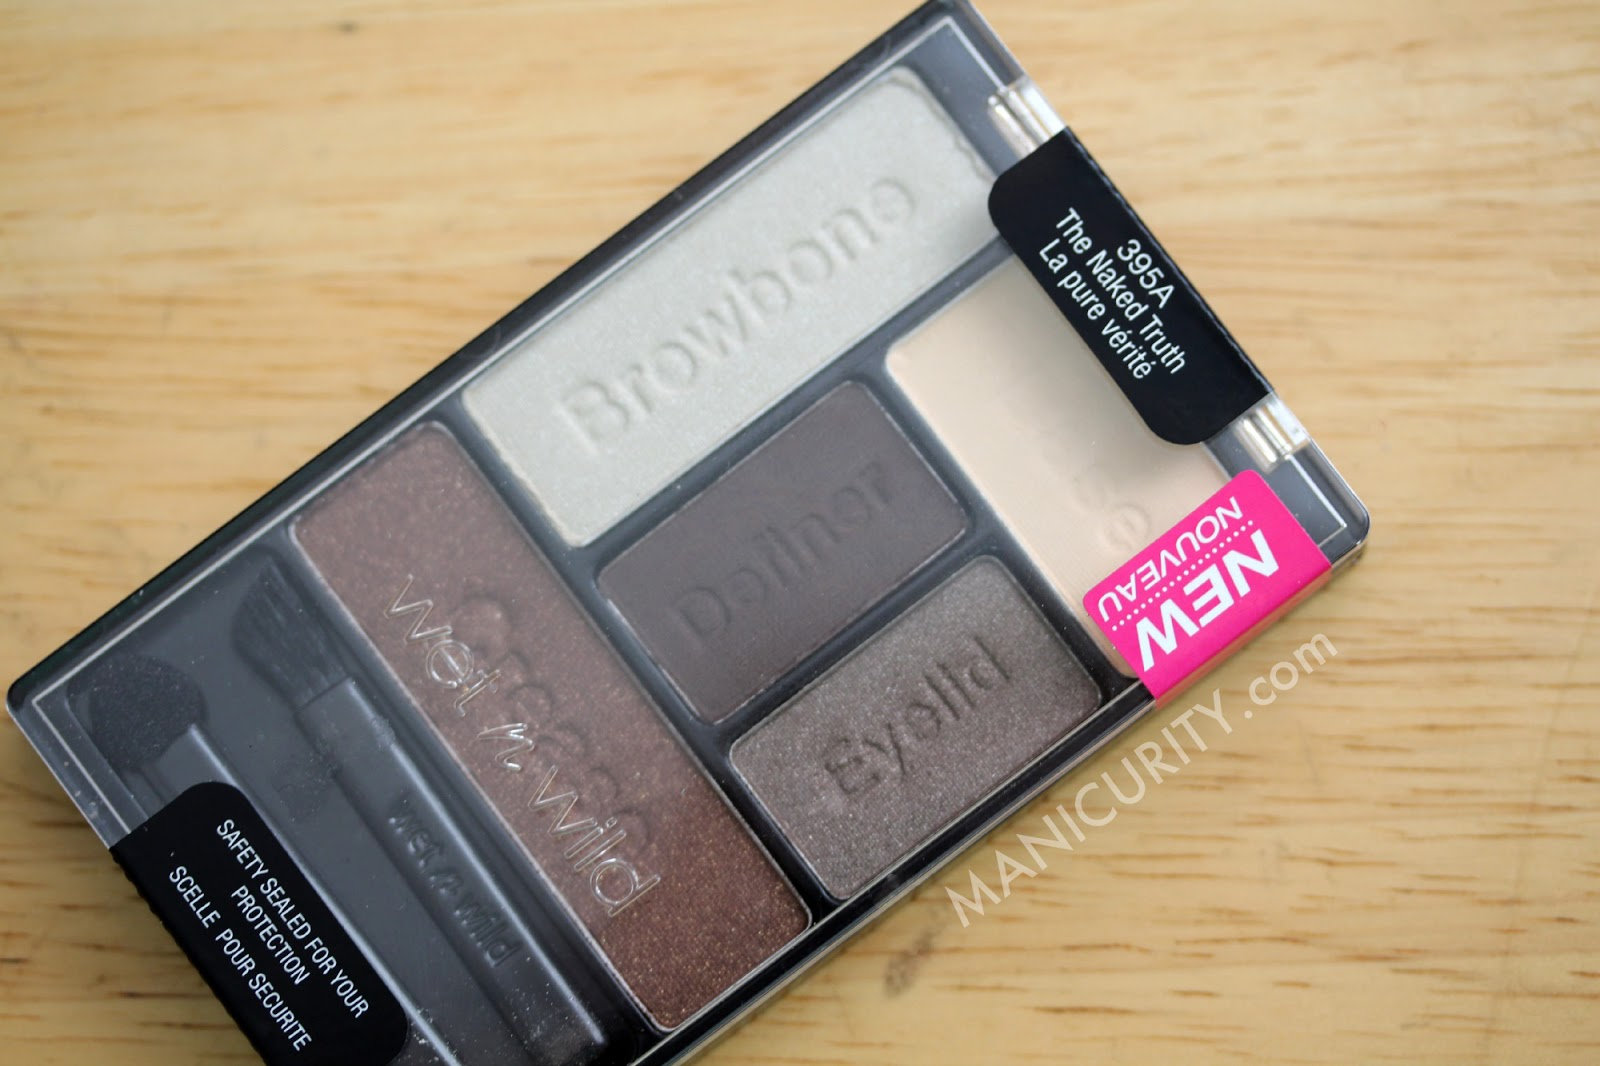 Wet n Wild 5-pan Color Icon eyeshadow palette in 'The Naked Truth' - swatches, looks, review | Manicurity.com